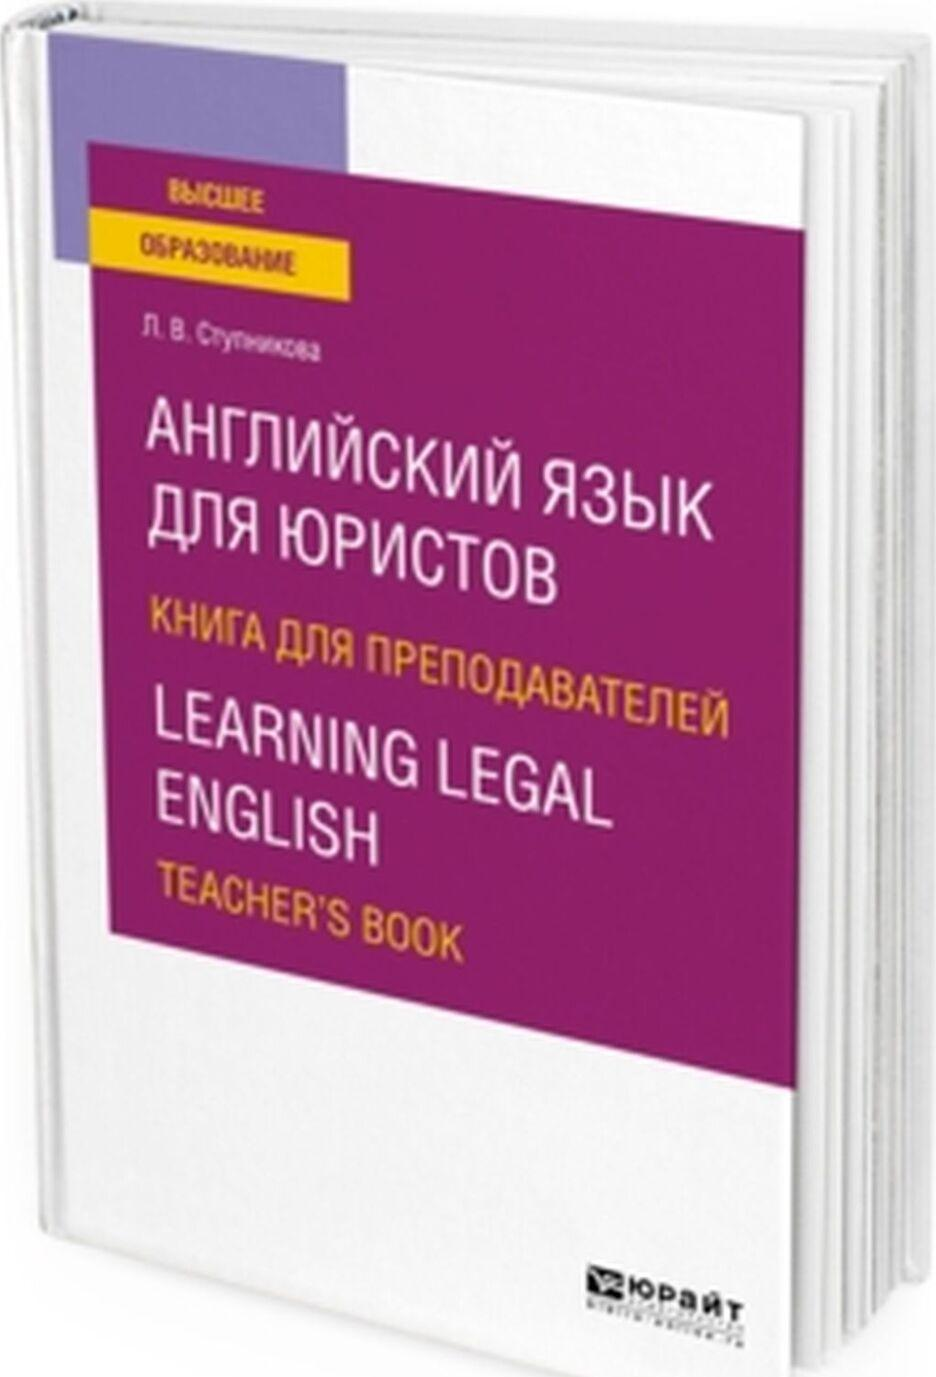 Anglijskij jazyk dlja juristov. Kniga dlja prepodavatelej. Learning legal english. Teachers book. Uchebnoe posobie dlja vuzov